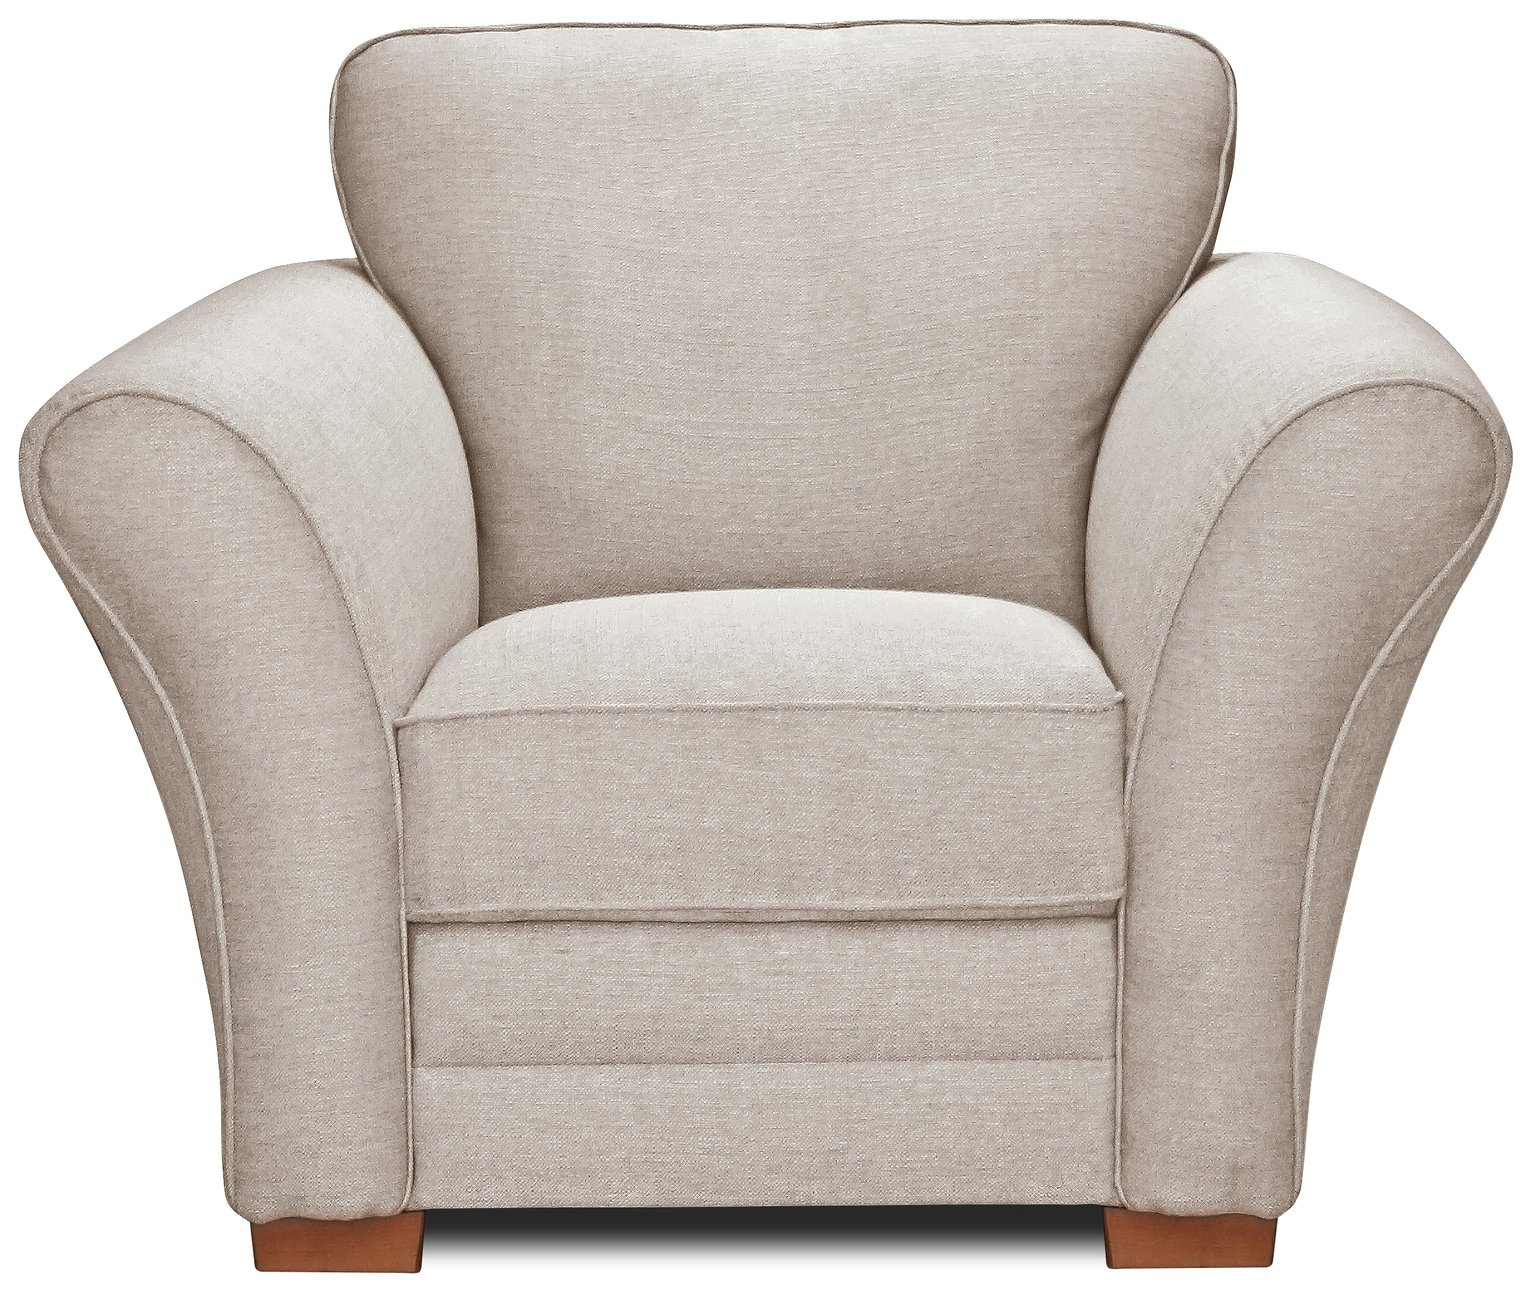 Argos Home New Thornton Fabric Armchair - Natural